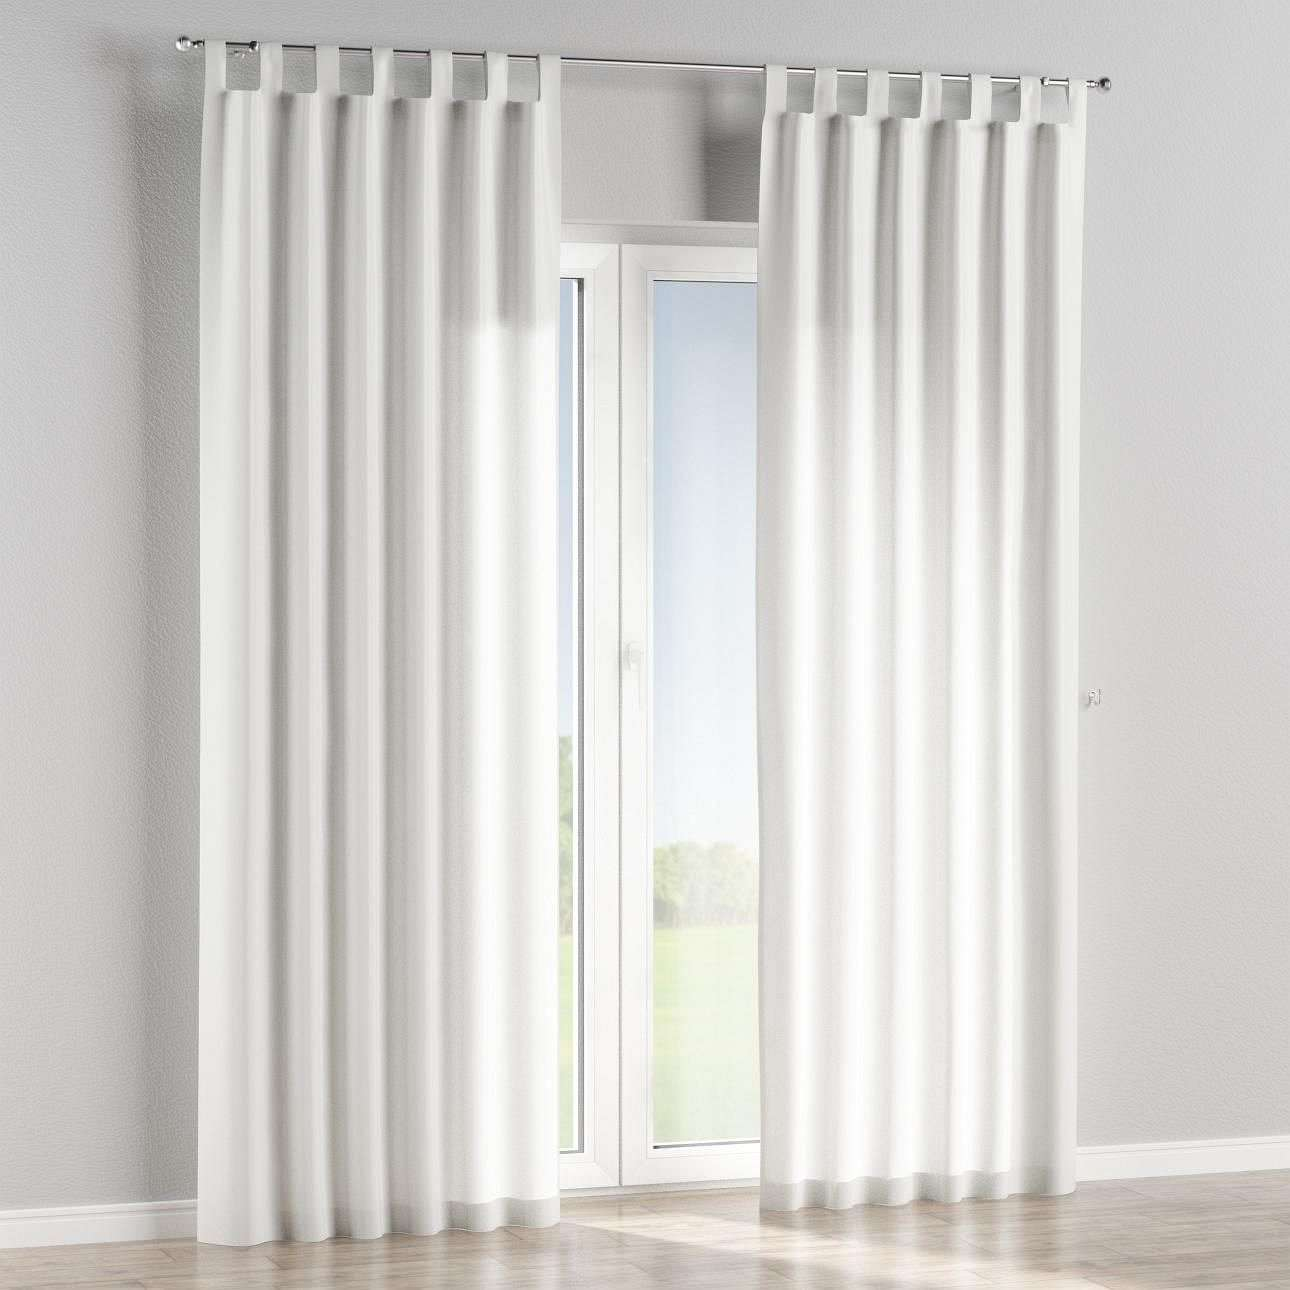 Tab top curtains in collection Milano, fabric: 150-34